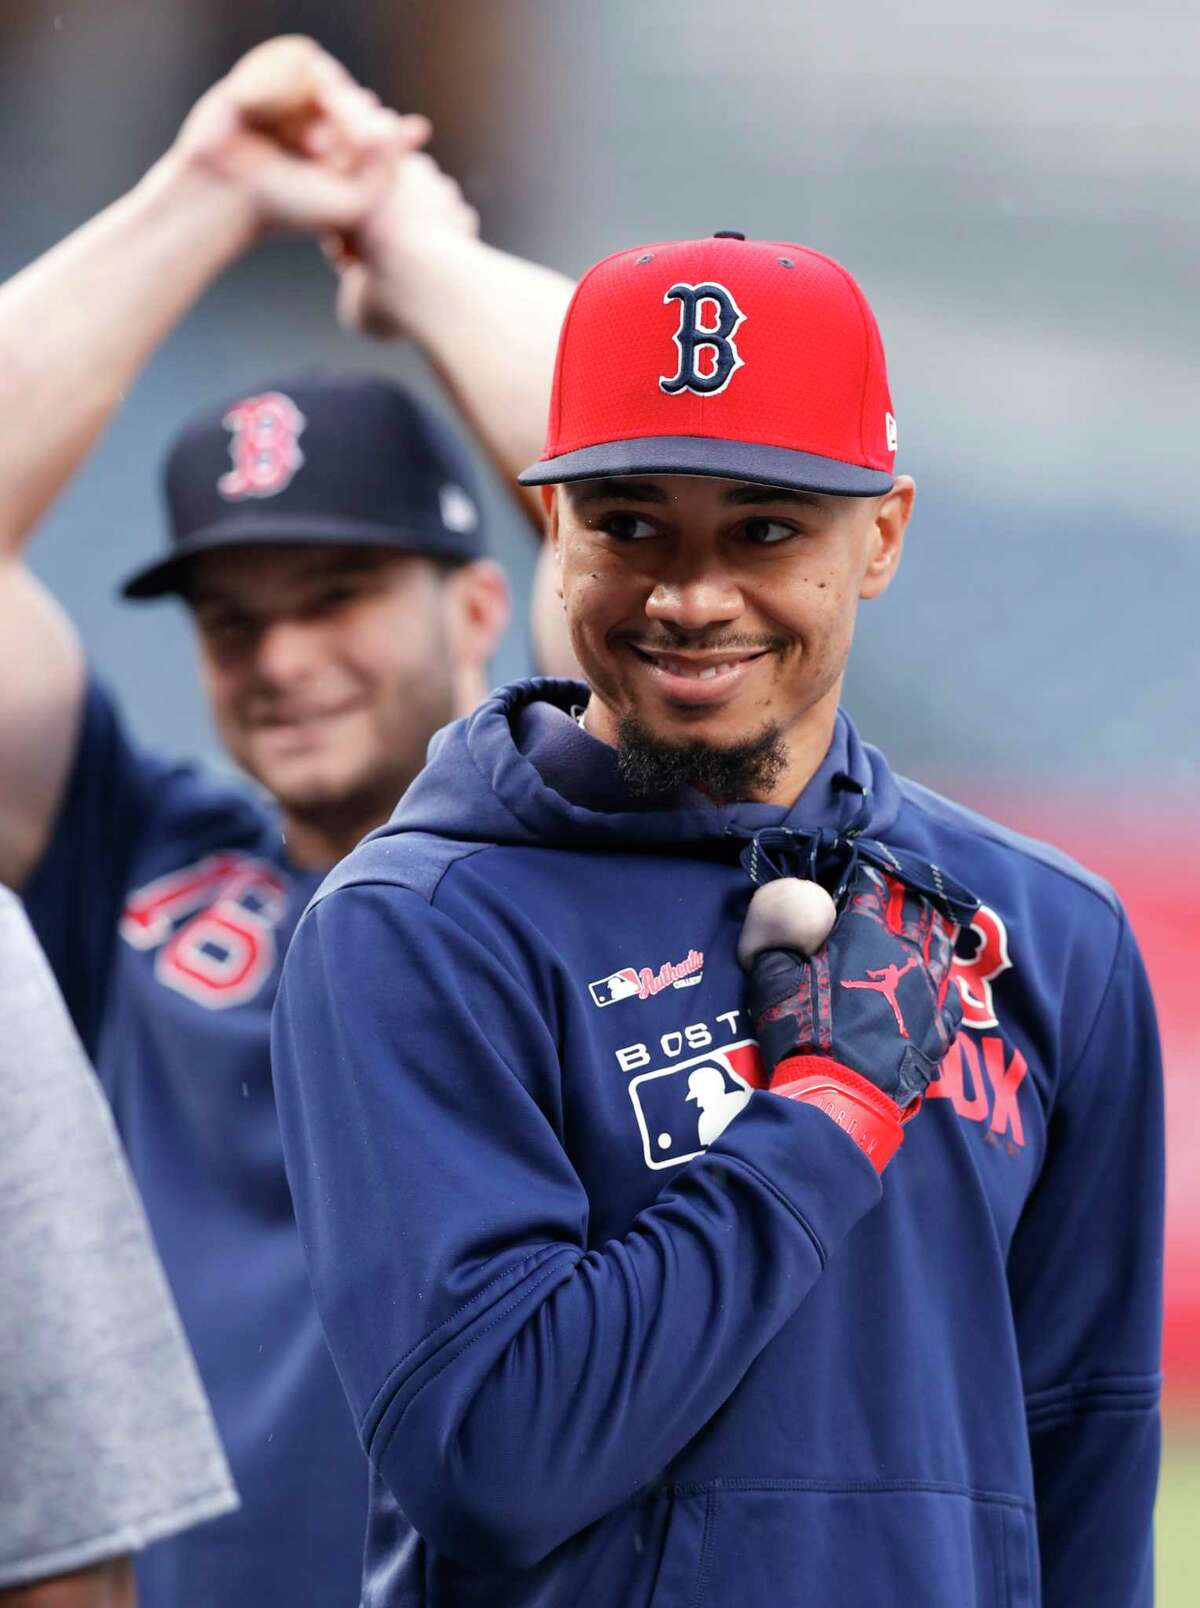 Boston Red Sox's Mookie Betts, right, and Andrew Benintendi wait their turn to take swings in the batting cage after the team's baseball game against the New York Yankees was postponed due to impending rain, Thursday, May 30, 2019, in New York. (AP Photo/Kathy Willens)